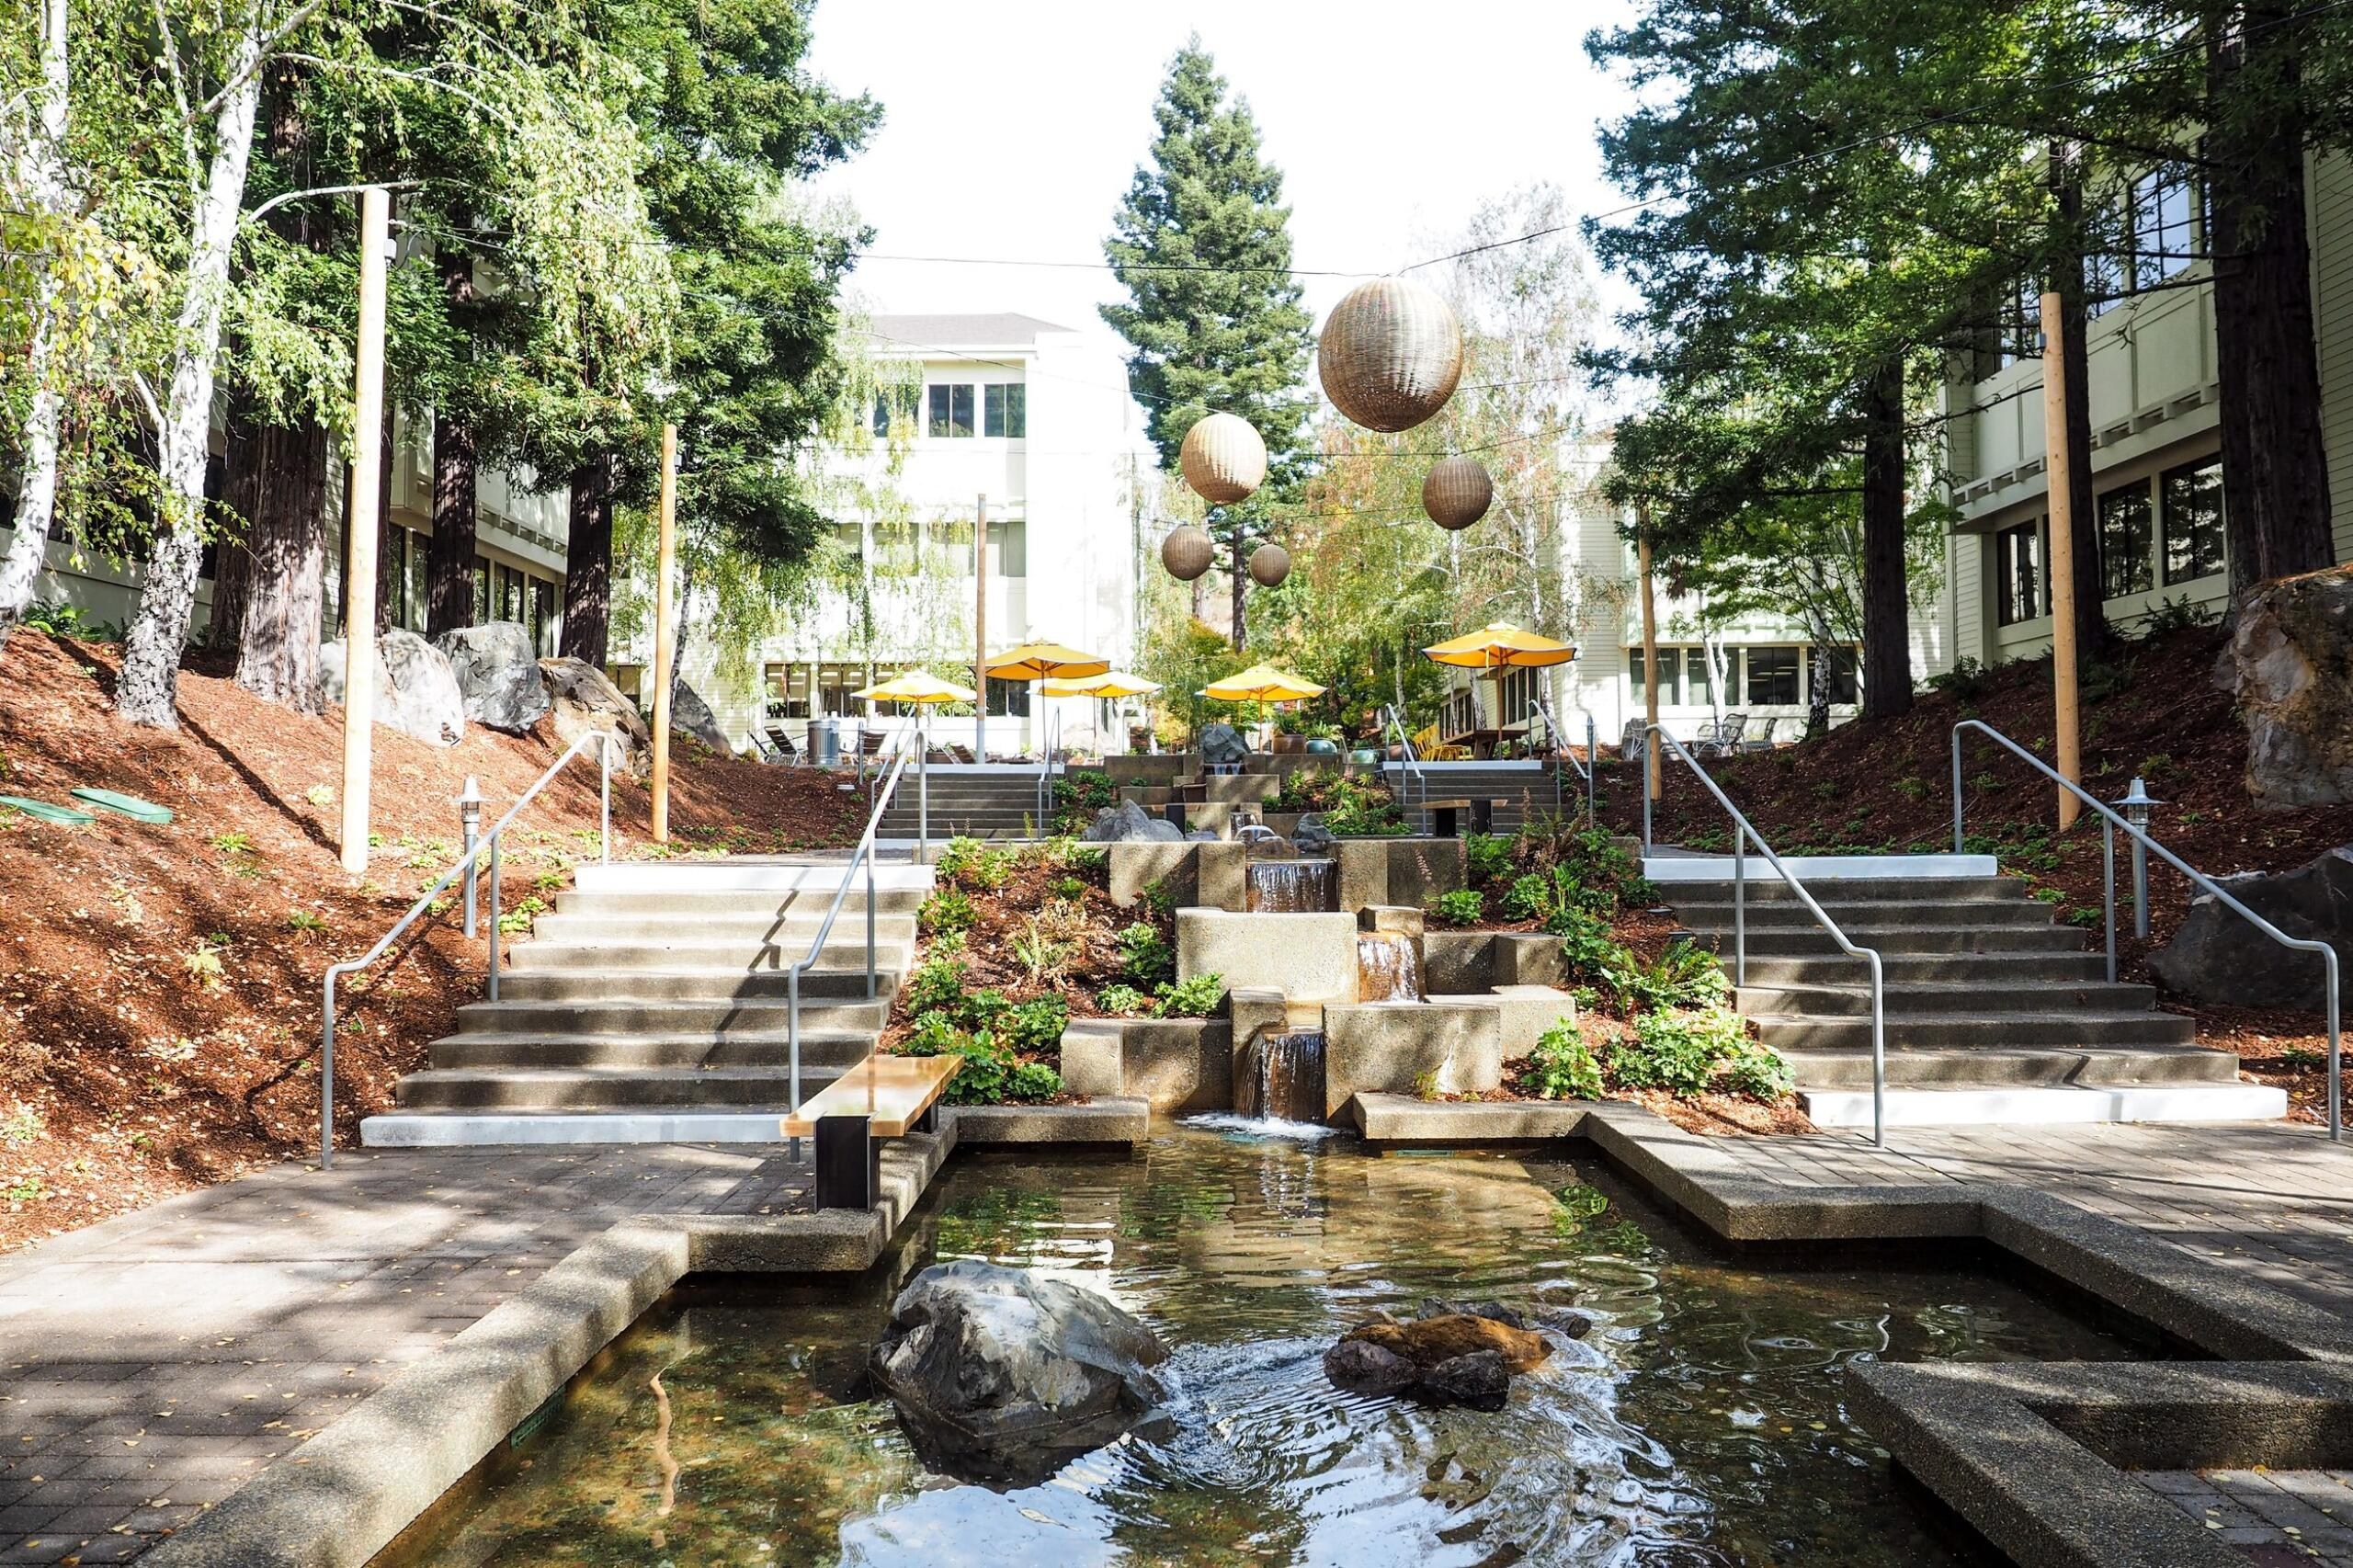 The courtyard at The Exchange at Larkspur Landing with large trees and water cascading into a reflecting pool